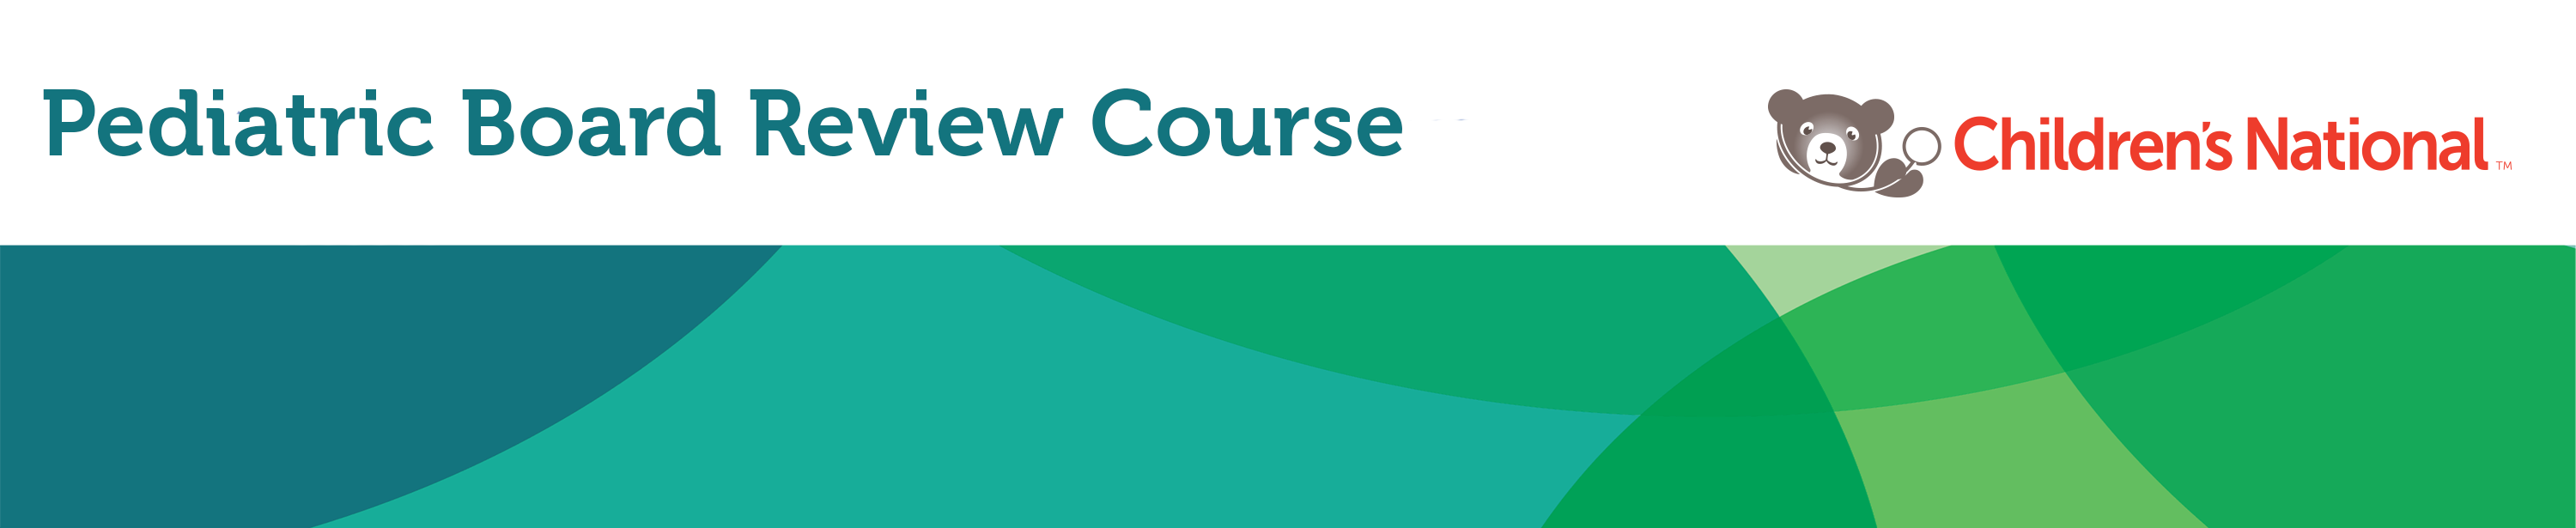 2015-2016 Pediatric Board Review Online Course